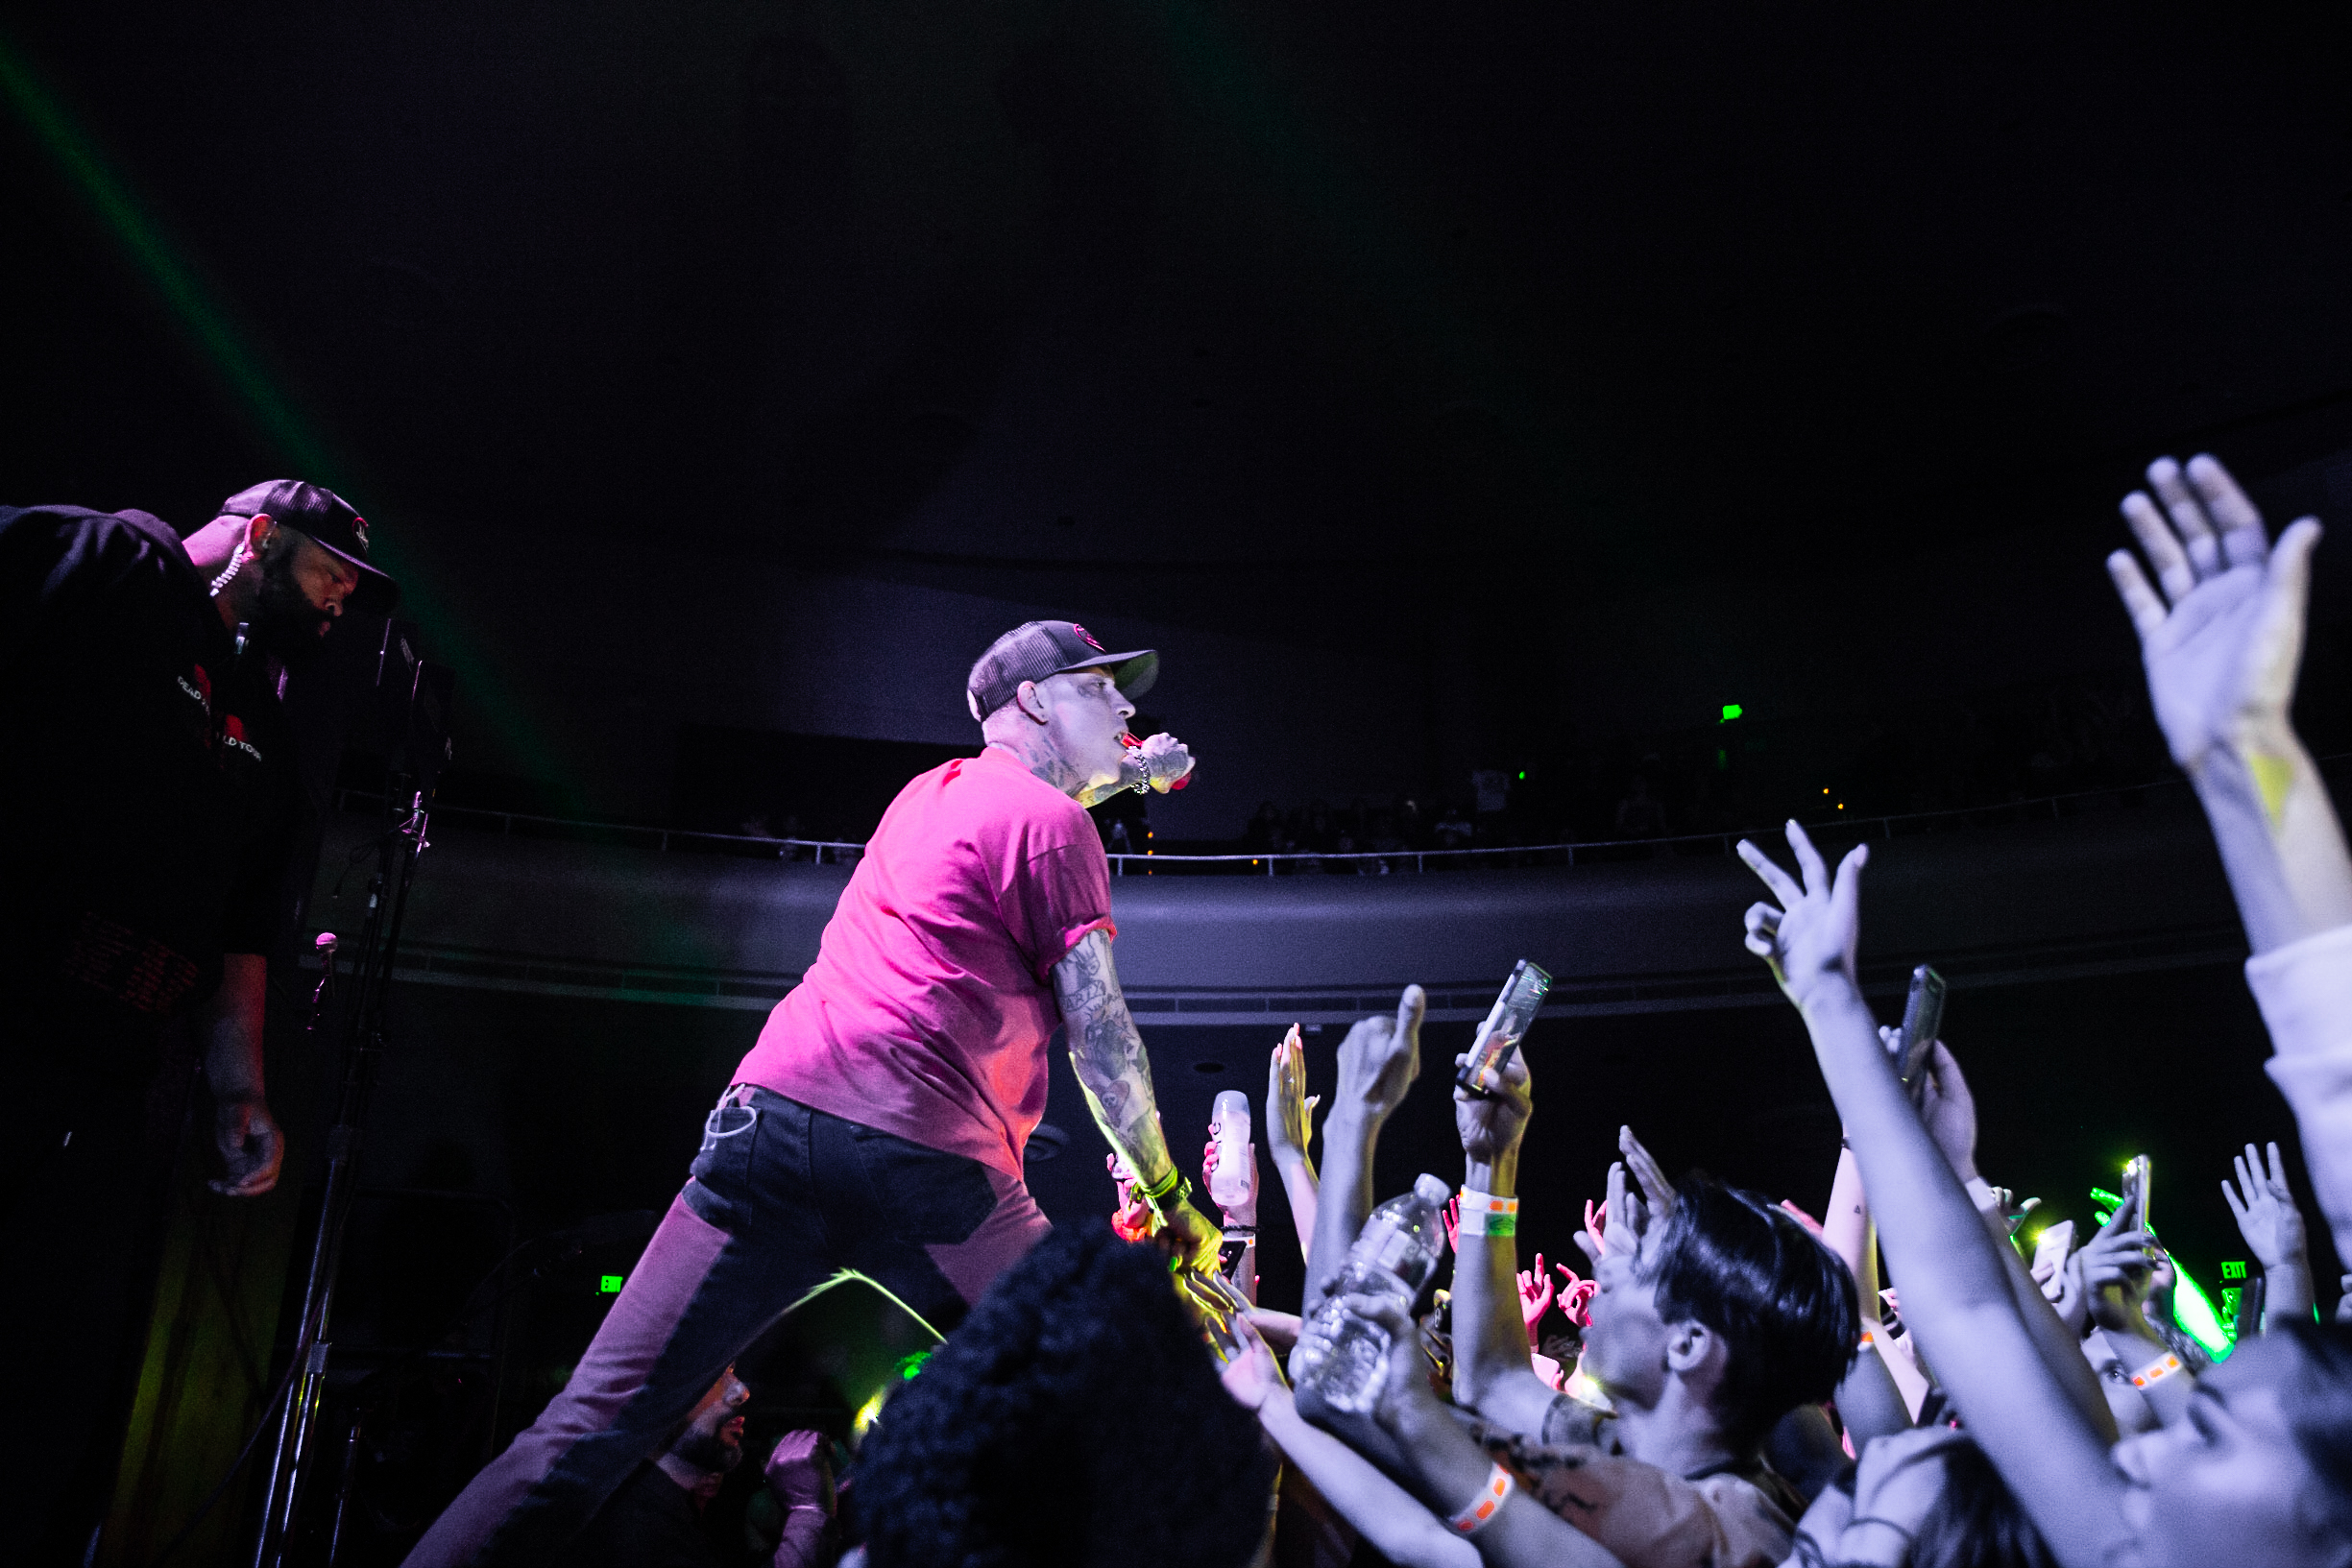 blackbear @ The Masonic: 5.19.19